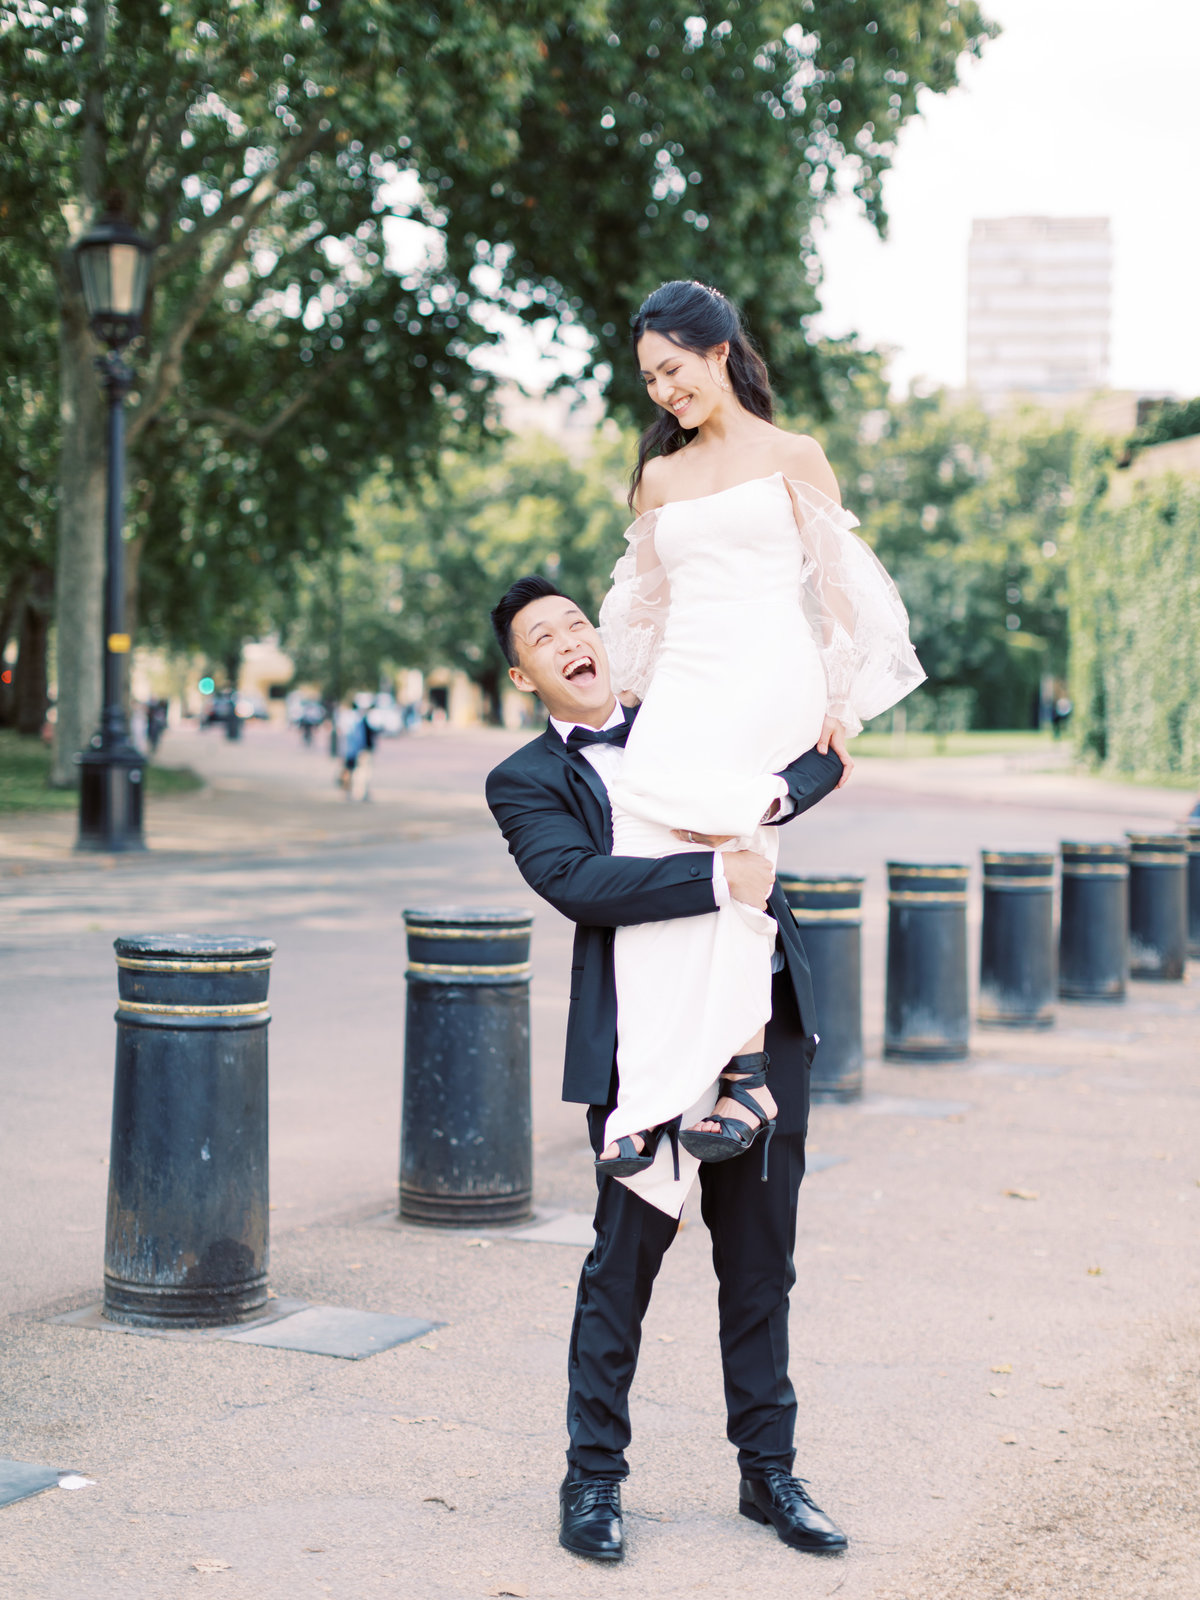 Terry-Li-Photography-London-Styled-Shoot-102